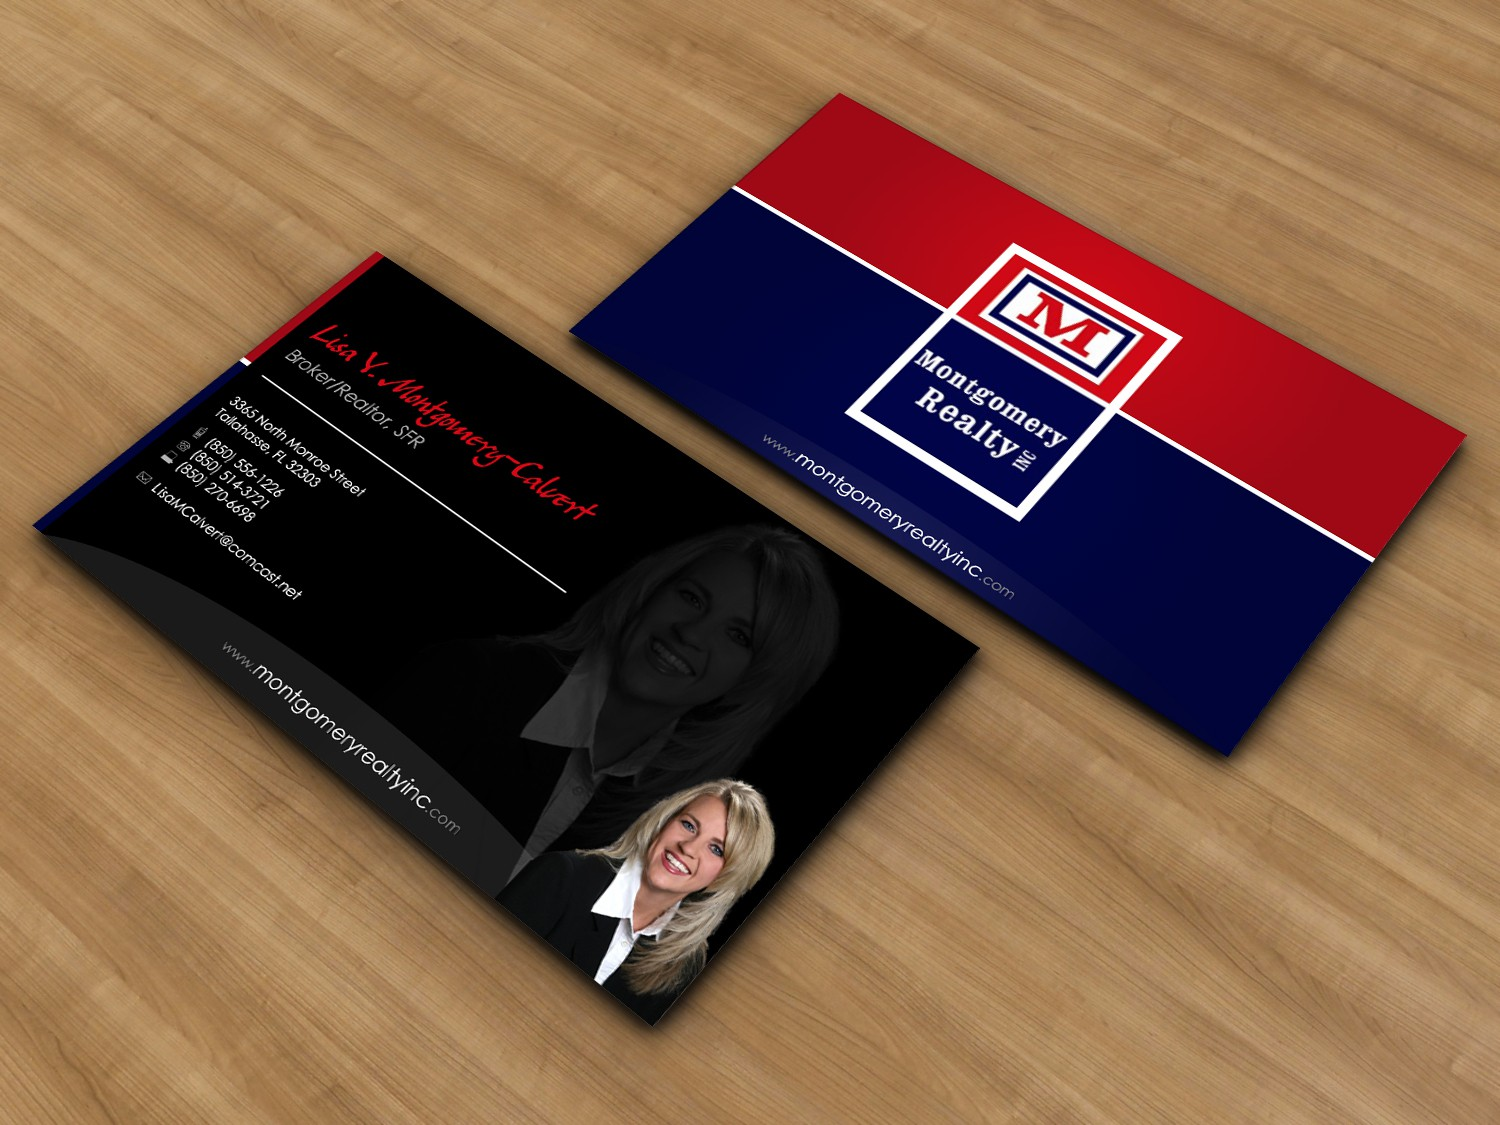 New print or packaging design wanted for Montgomery Realty Inc.